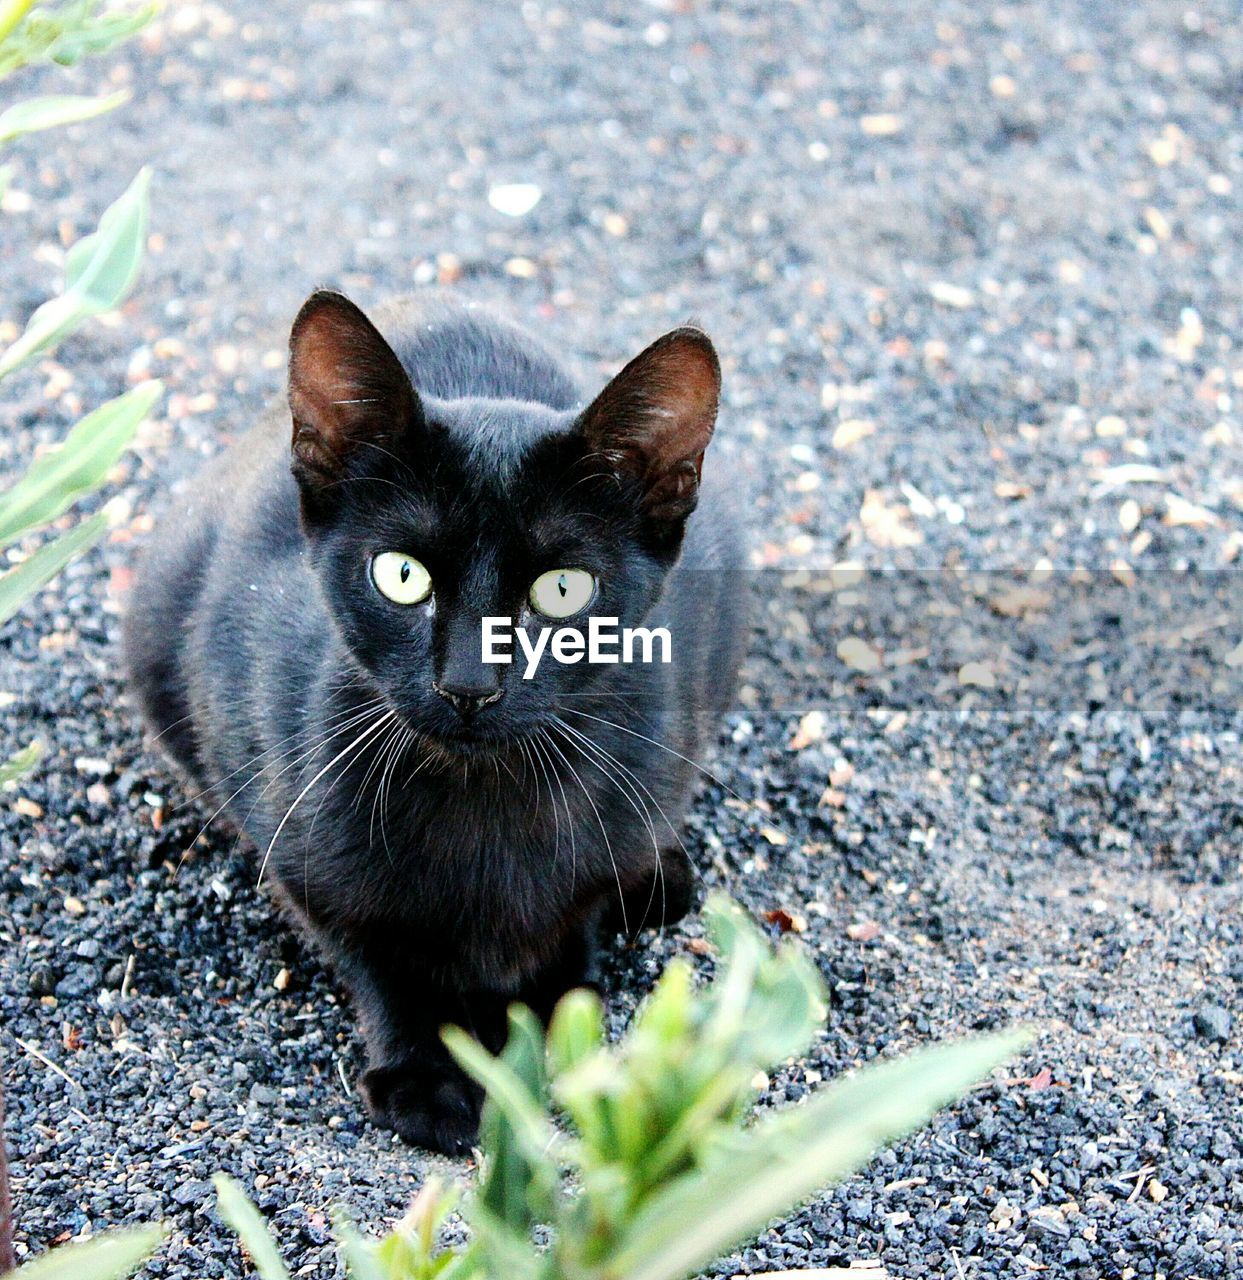 domestic cat, looking at camera, one animal, animal themes, pets, feline, domestic animals, portrait, mammal, black color, whisker, outdoors, day, yellow eyes, nature, no people, siamese cat, close-up